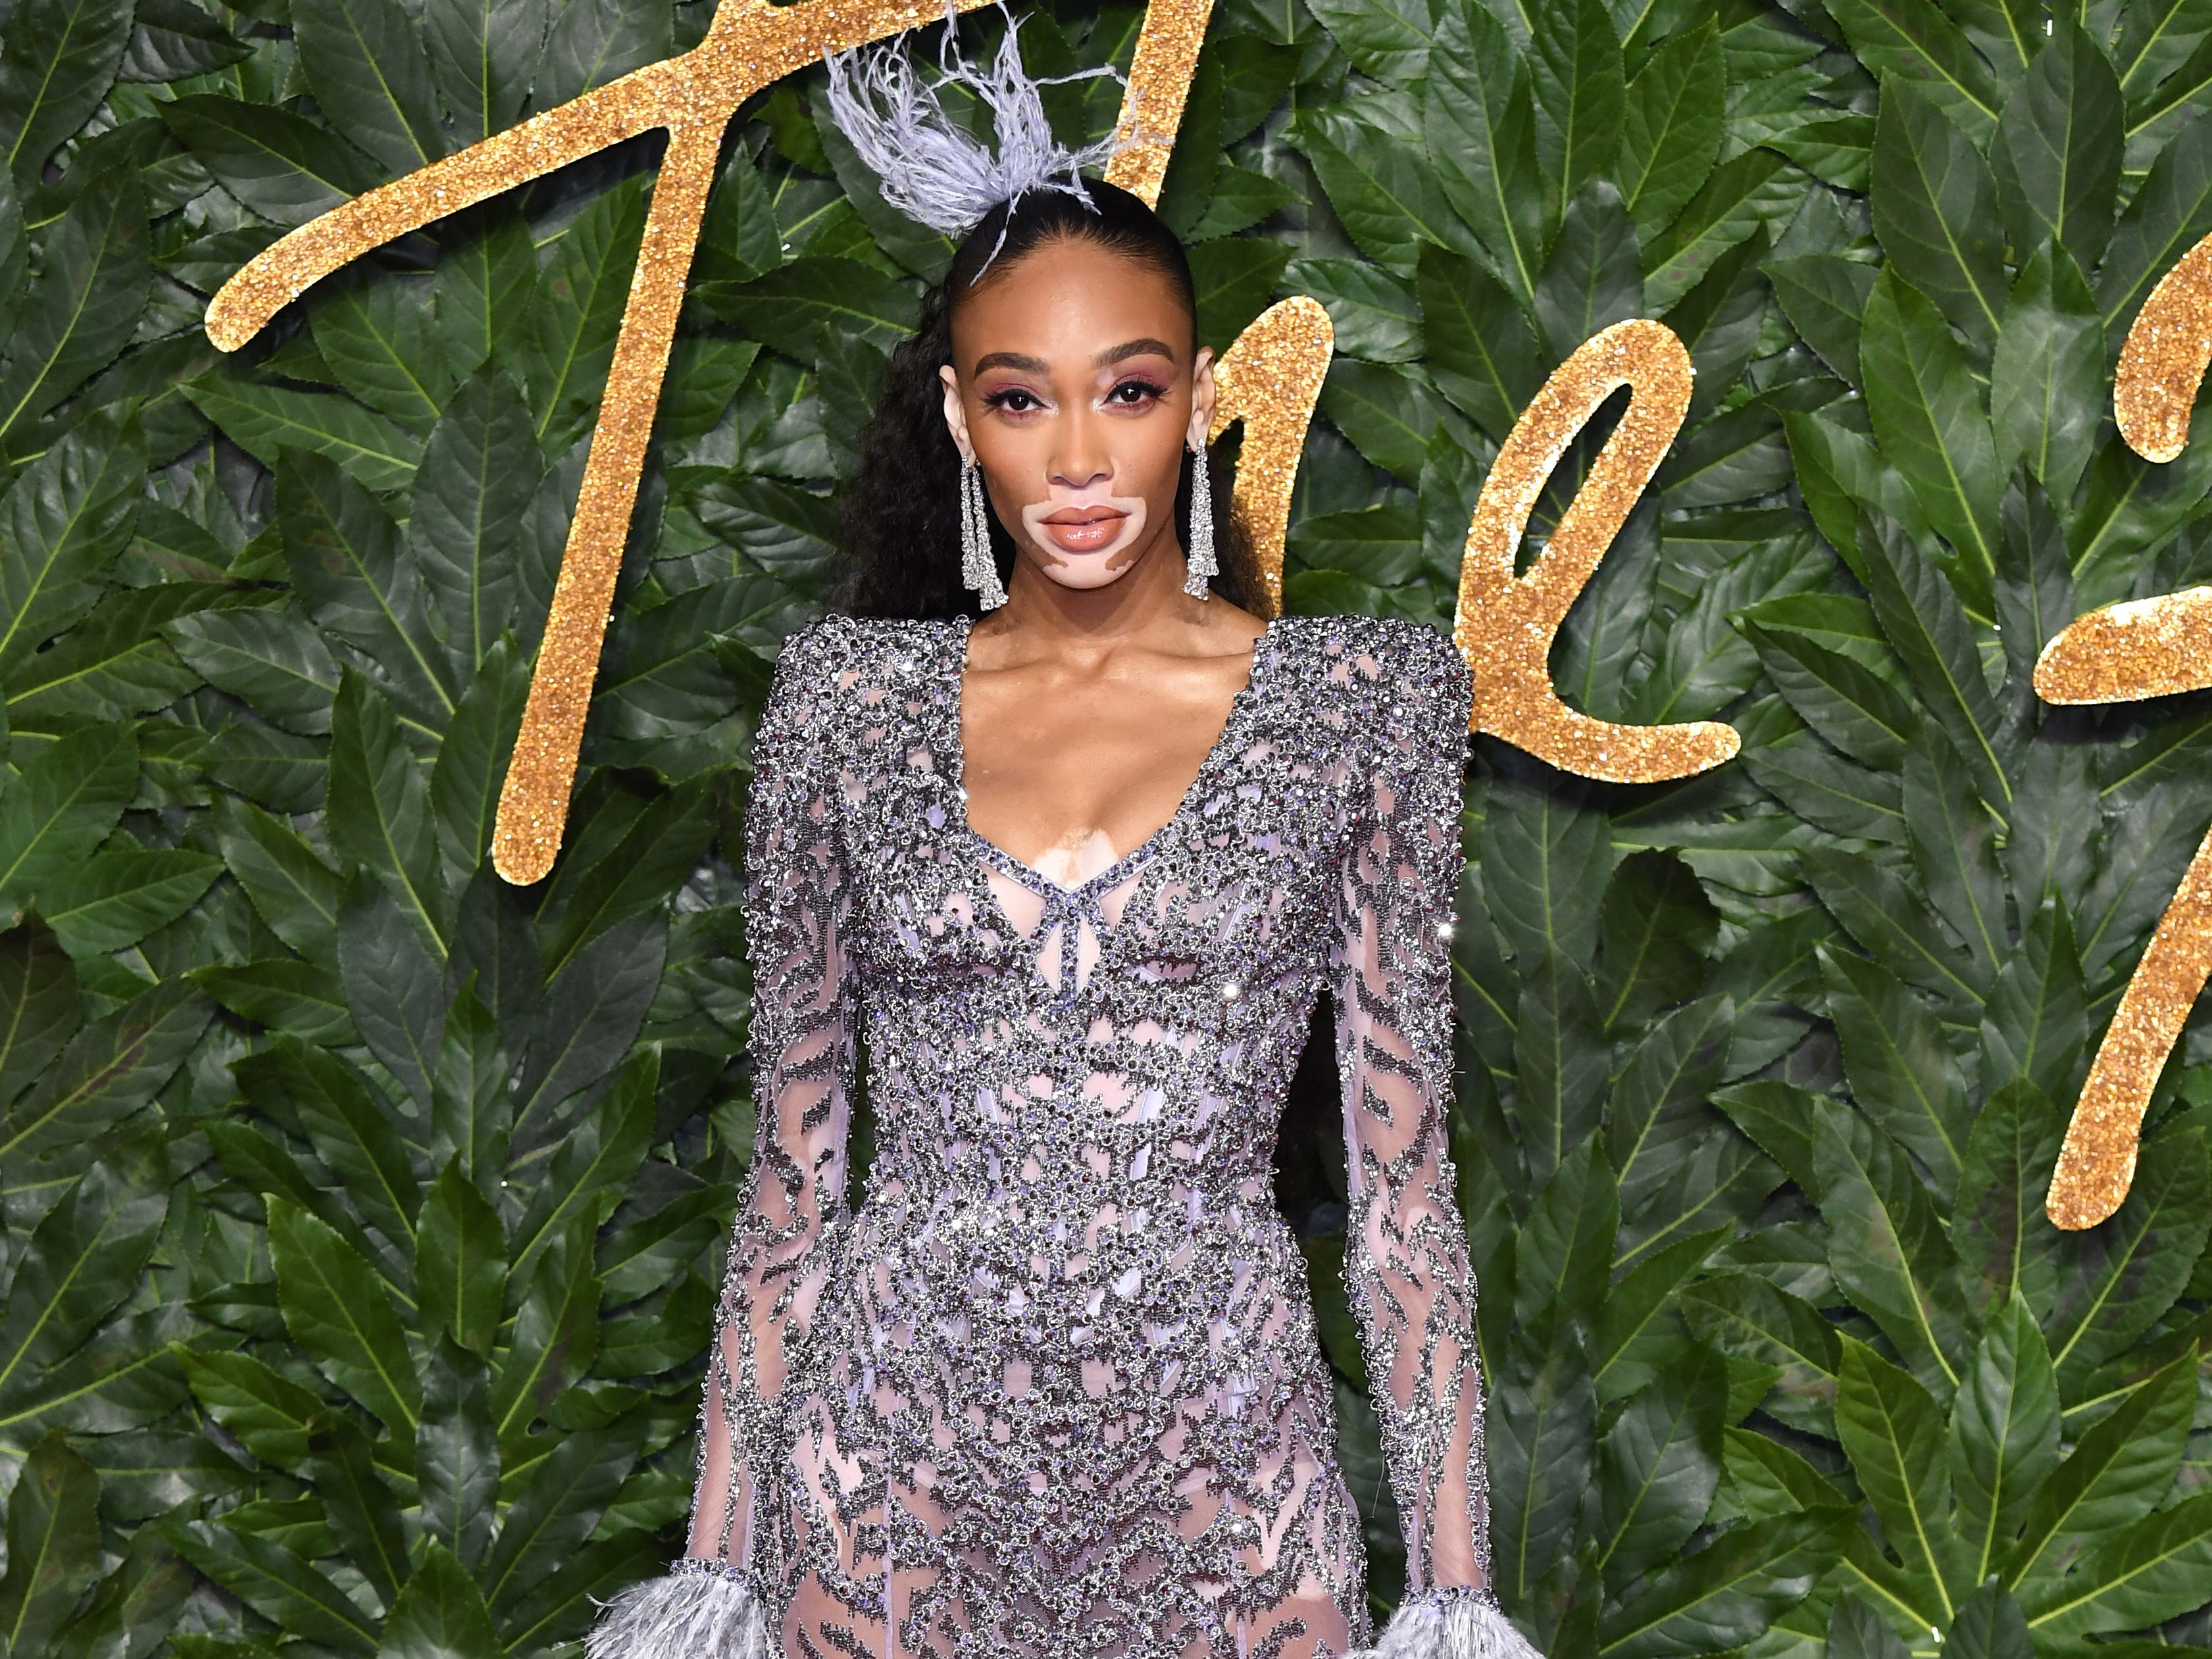 LONDON, ENGLAND - DECEMBER 10:  Winnie Harlow arrives at The Fashion Awards 2018 In Partnership With Swarovski at Royal Albert Hall on December 10, 2018 in London, England.  (Photo by Karwai Tang/WireImage) ORG XMIT: 775267791 ORIG FILE ID: 1071537030